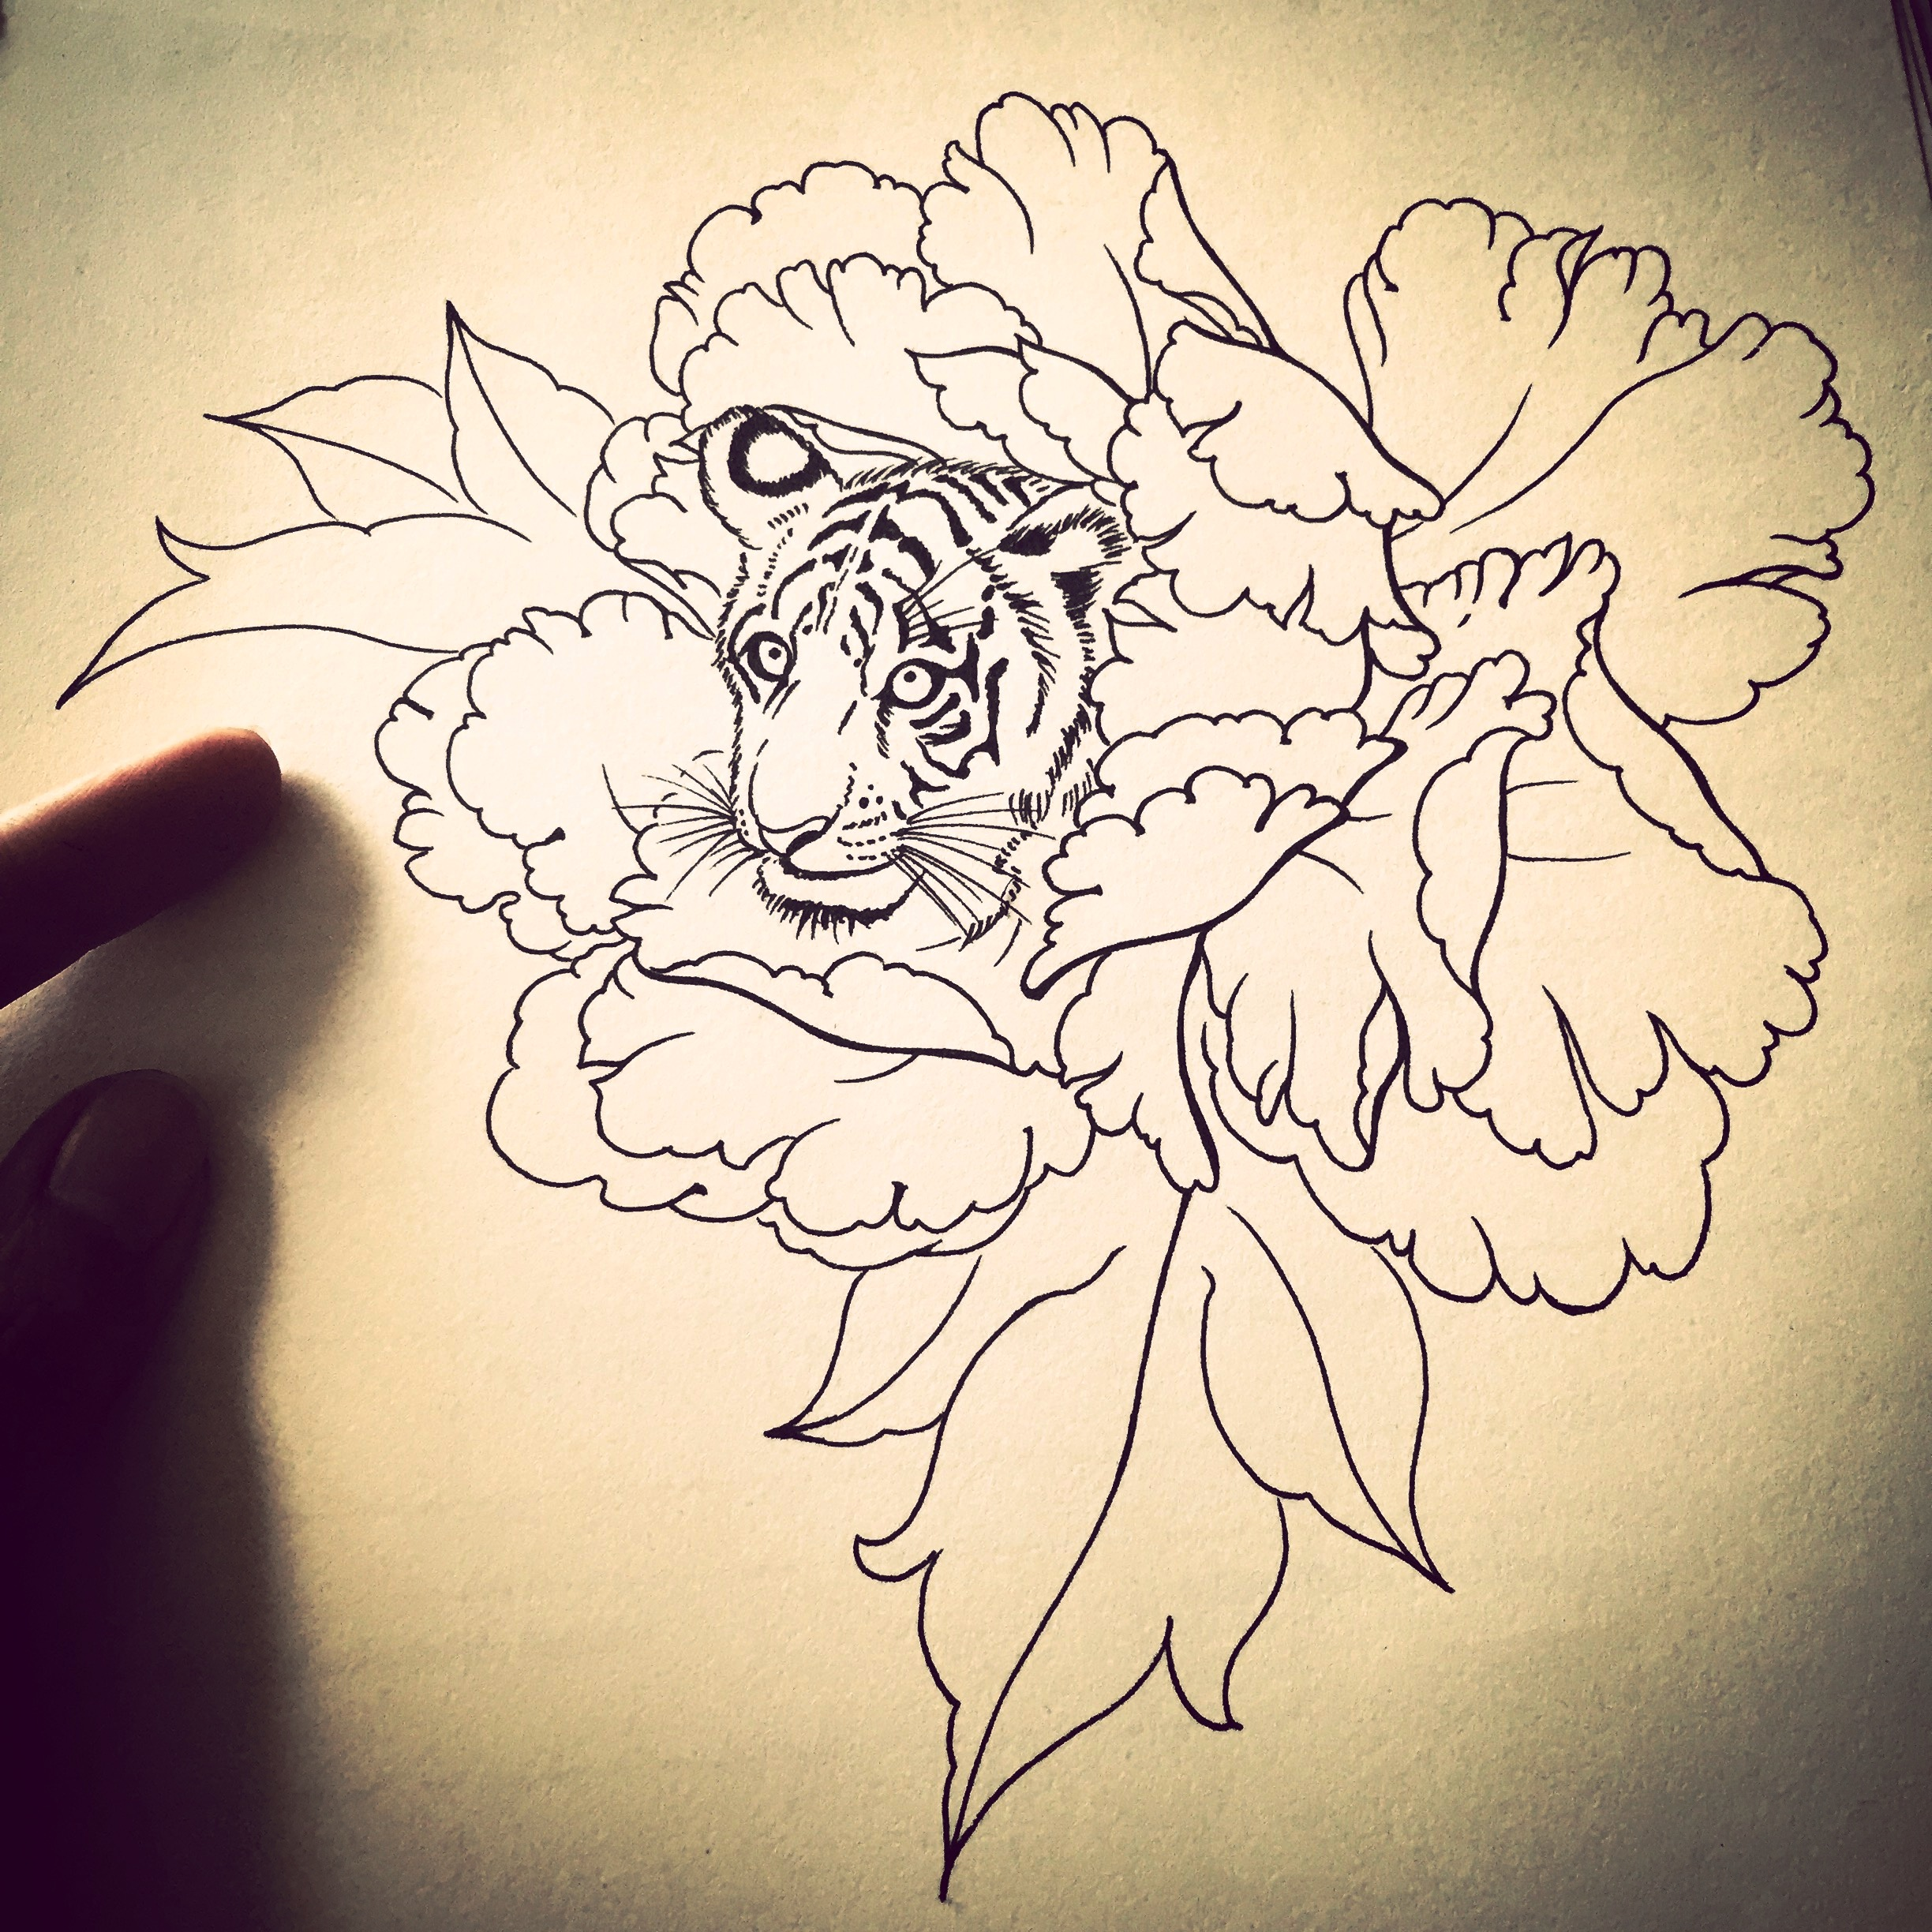 tiger-flowers-drawing.jpg